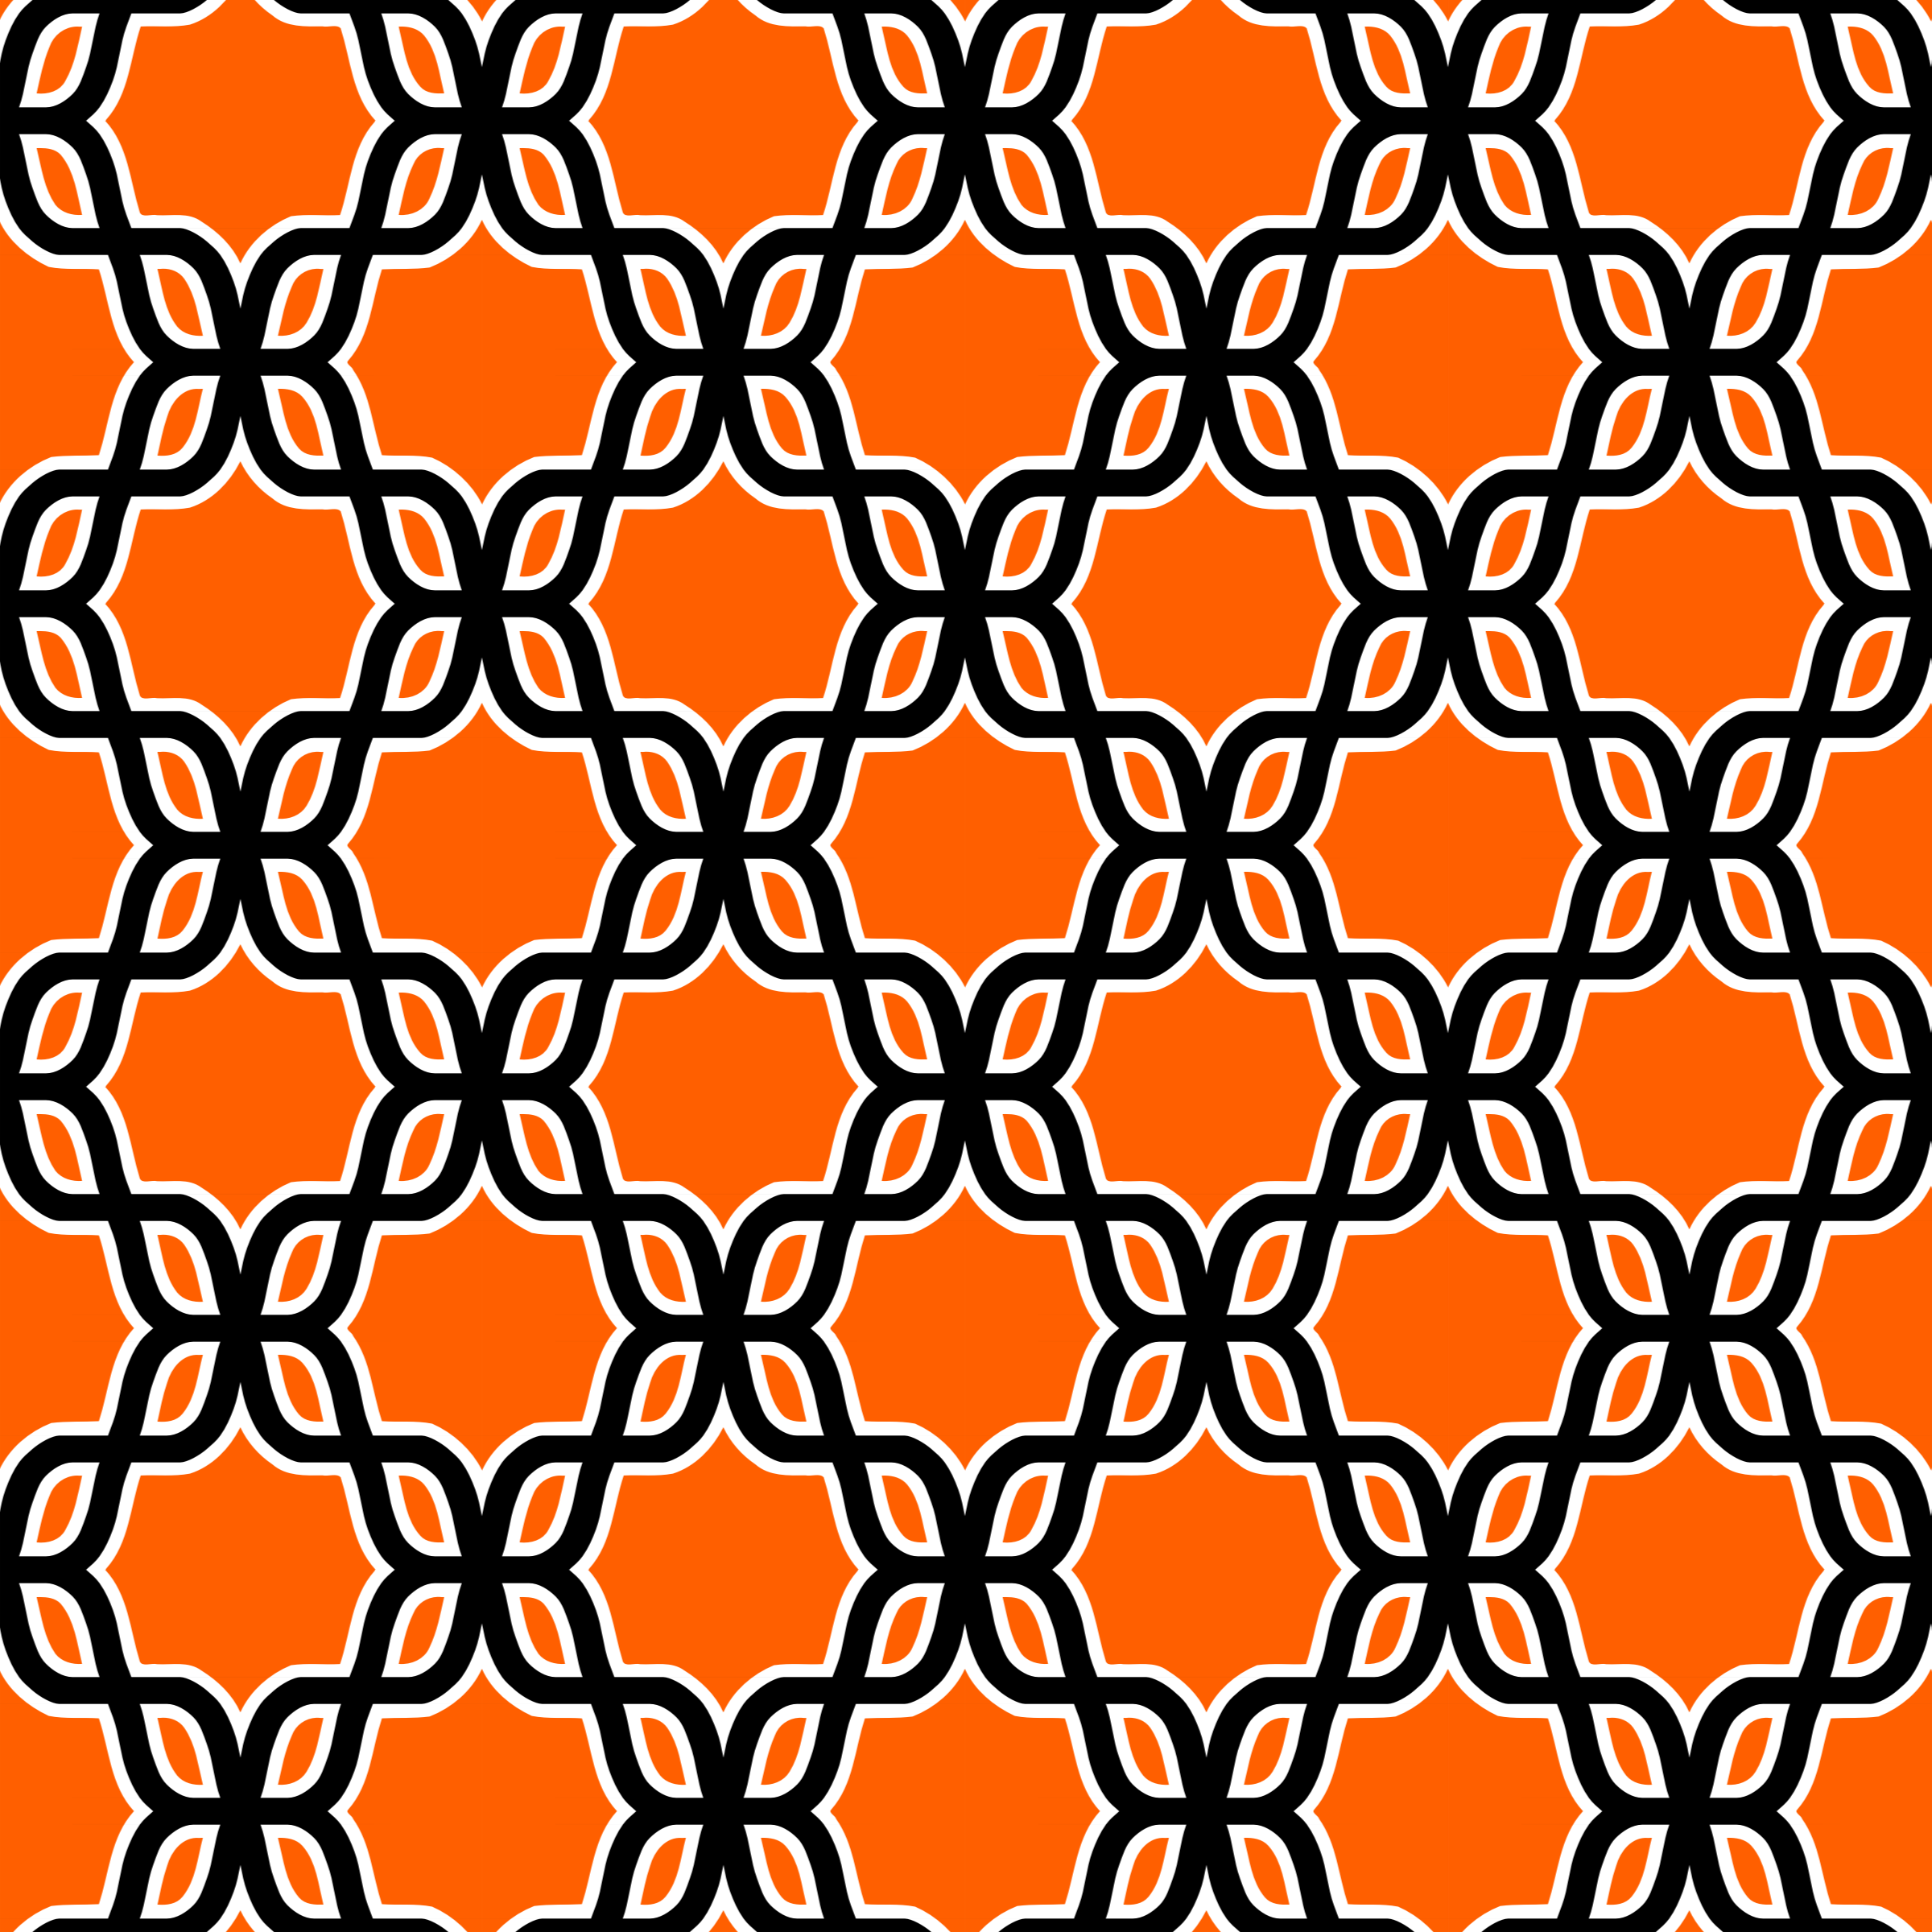 Background pattern 194 (variant 2) by Firkin